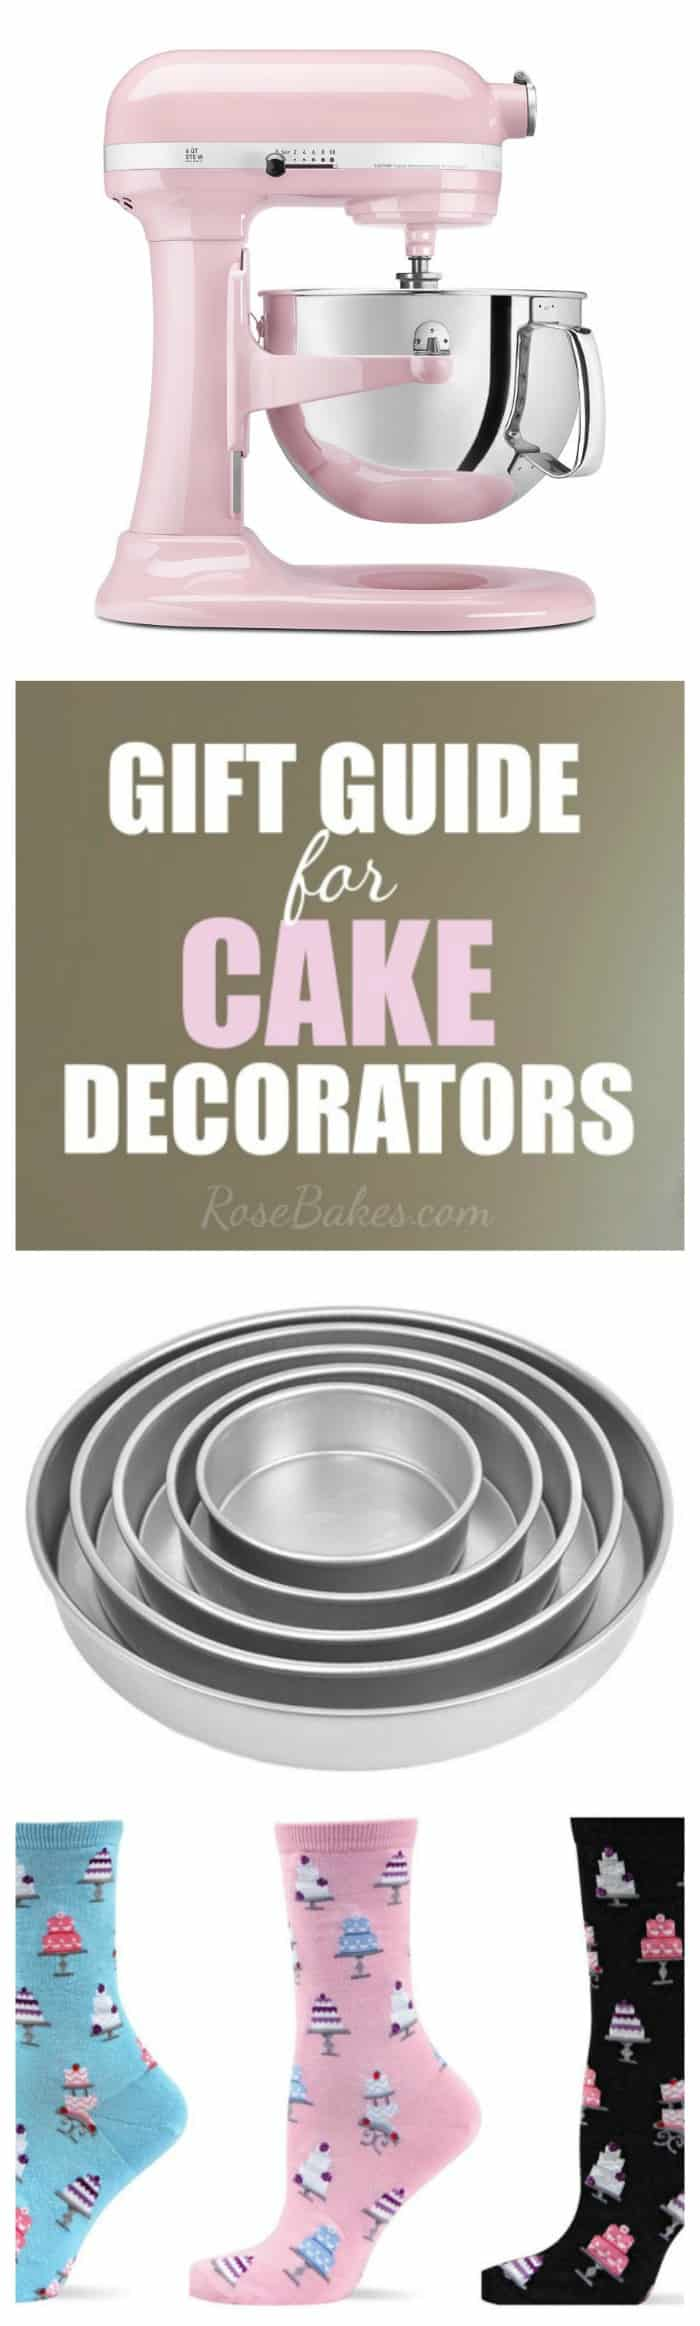 A Gift Guide for Cake Decorators & Bakers - Gifts for any Budget!